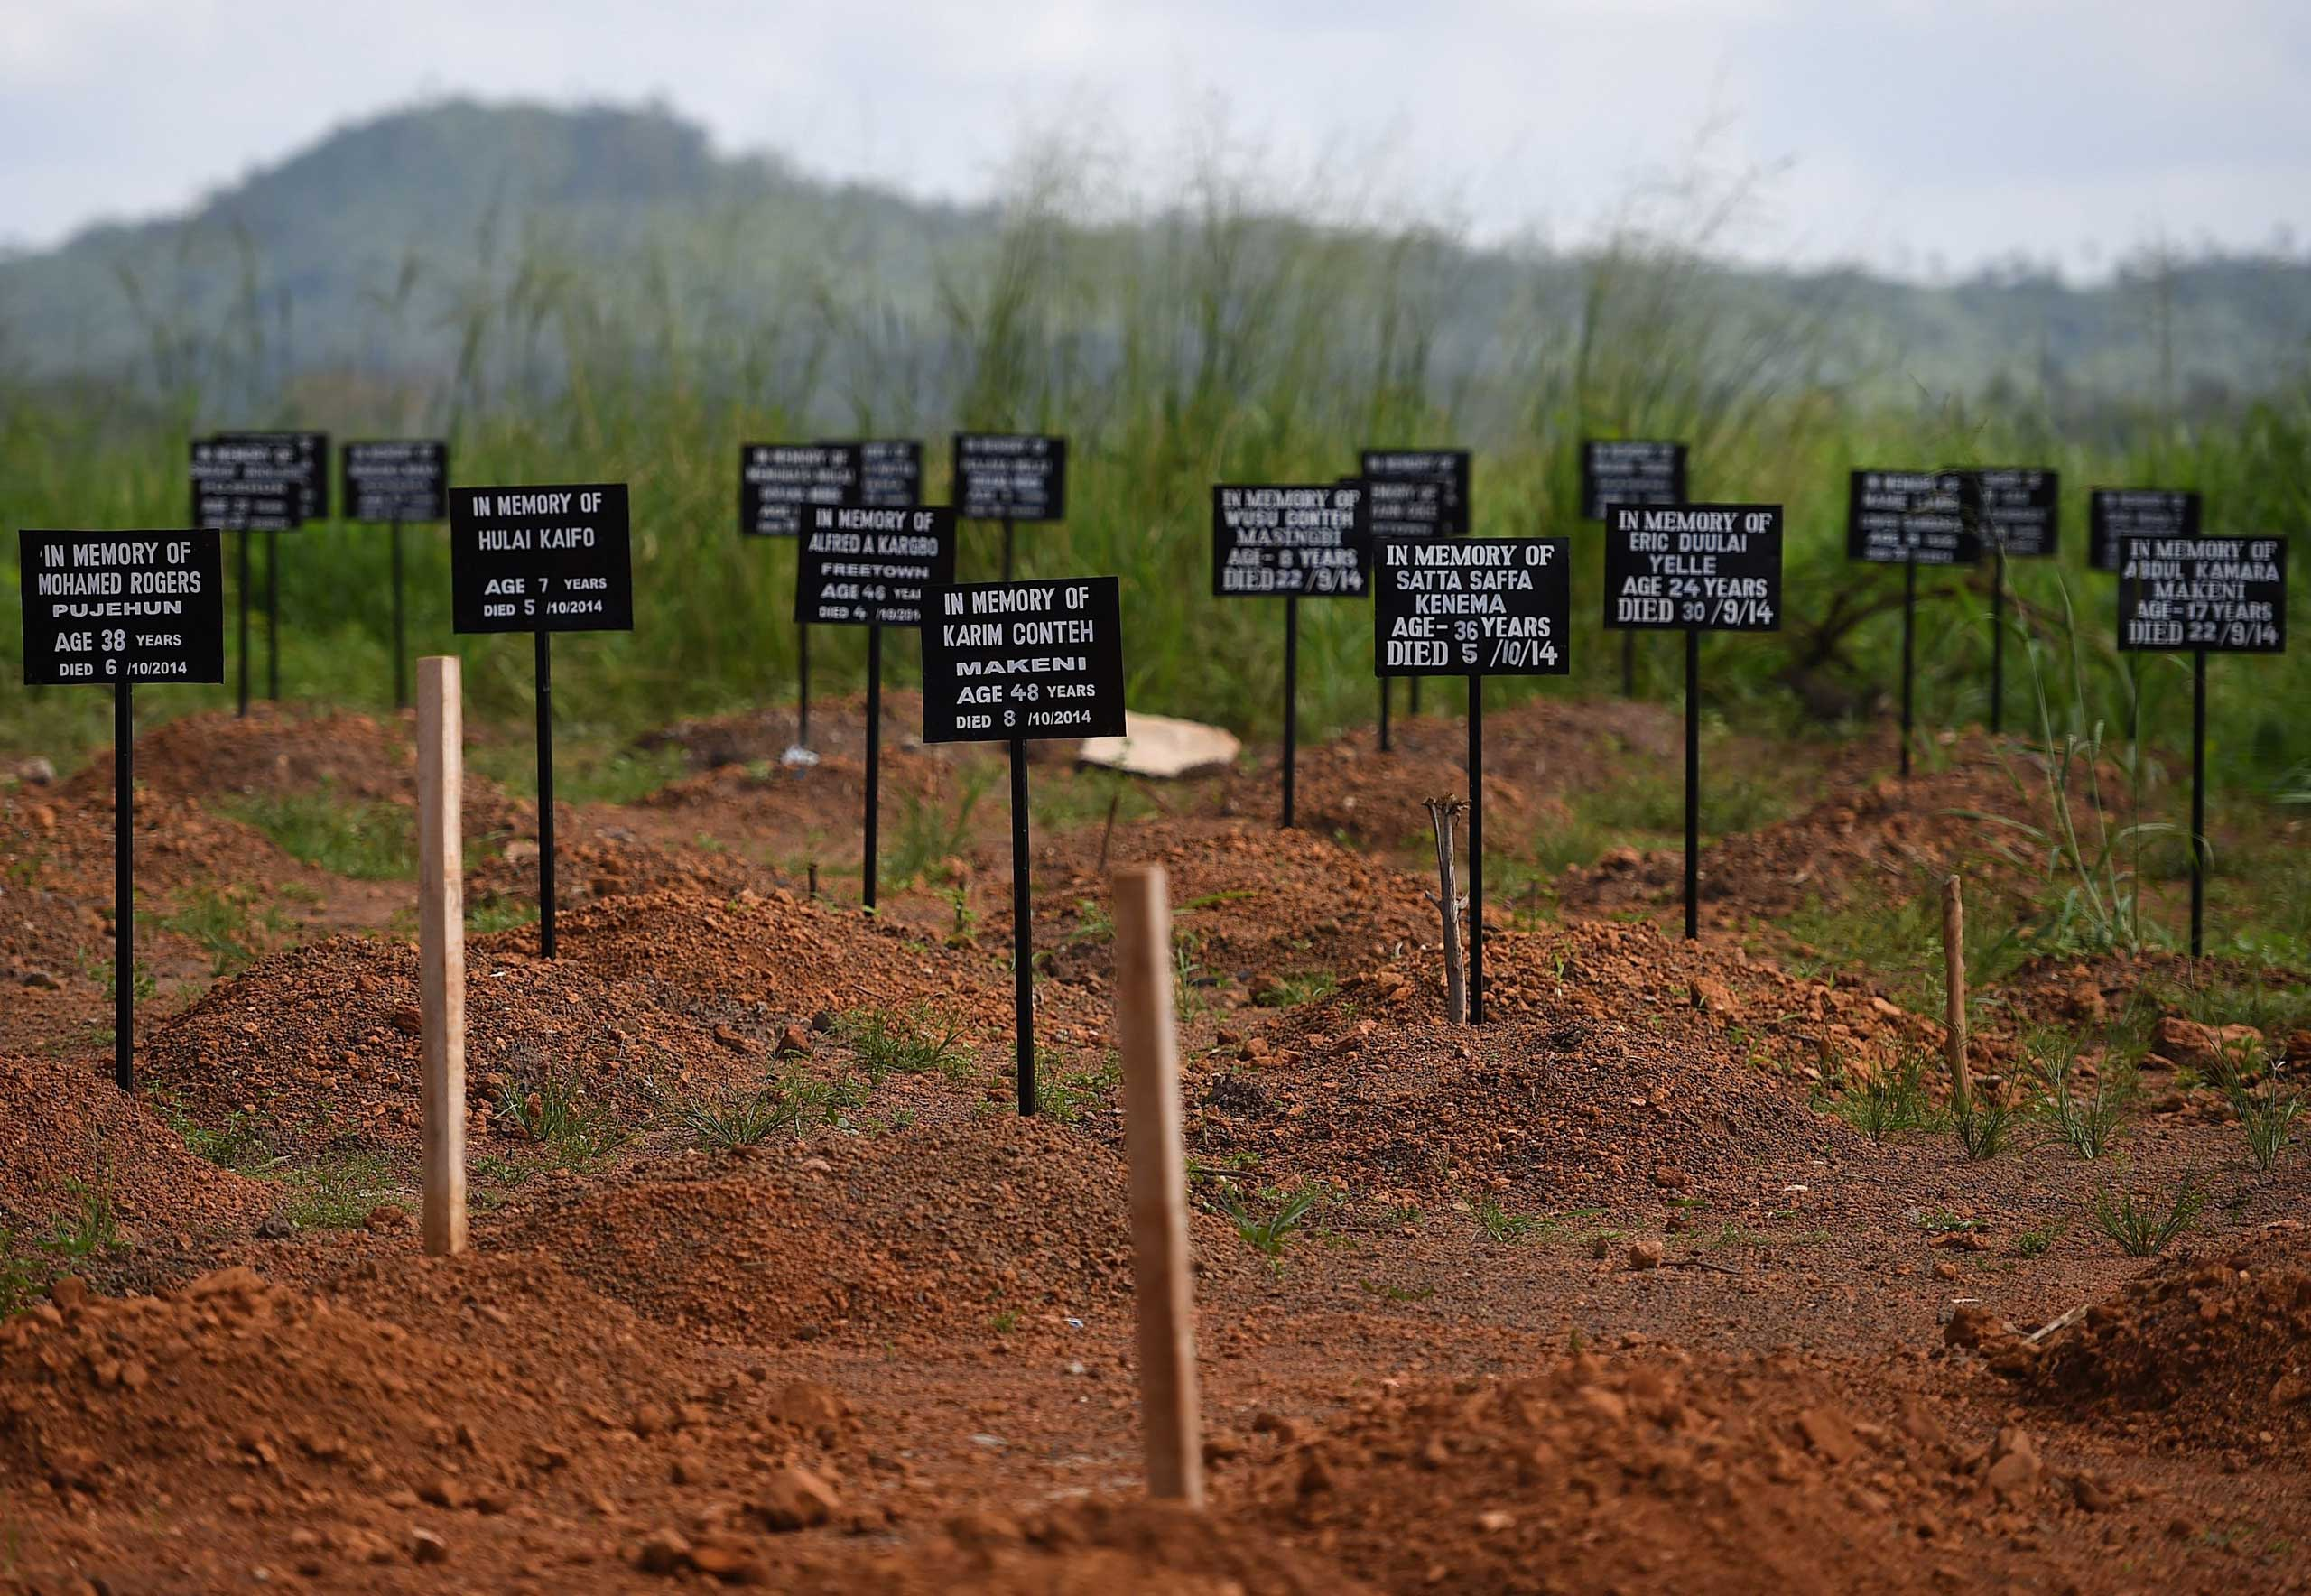 A cemetery at the Kenama Ebola treatment center in Sierra Leone run by the Red Cross Society on Nov. 15, 2014